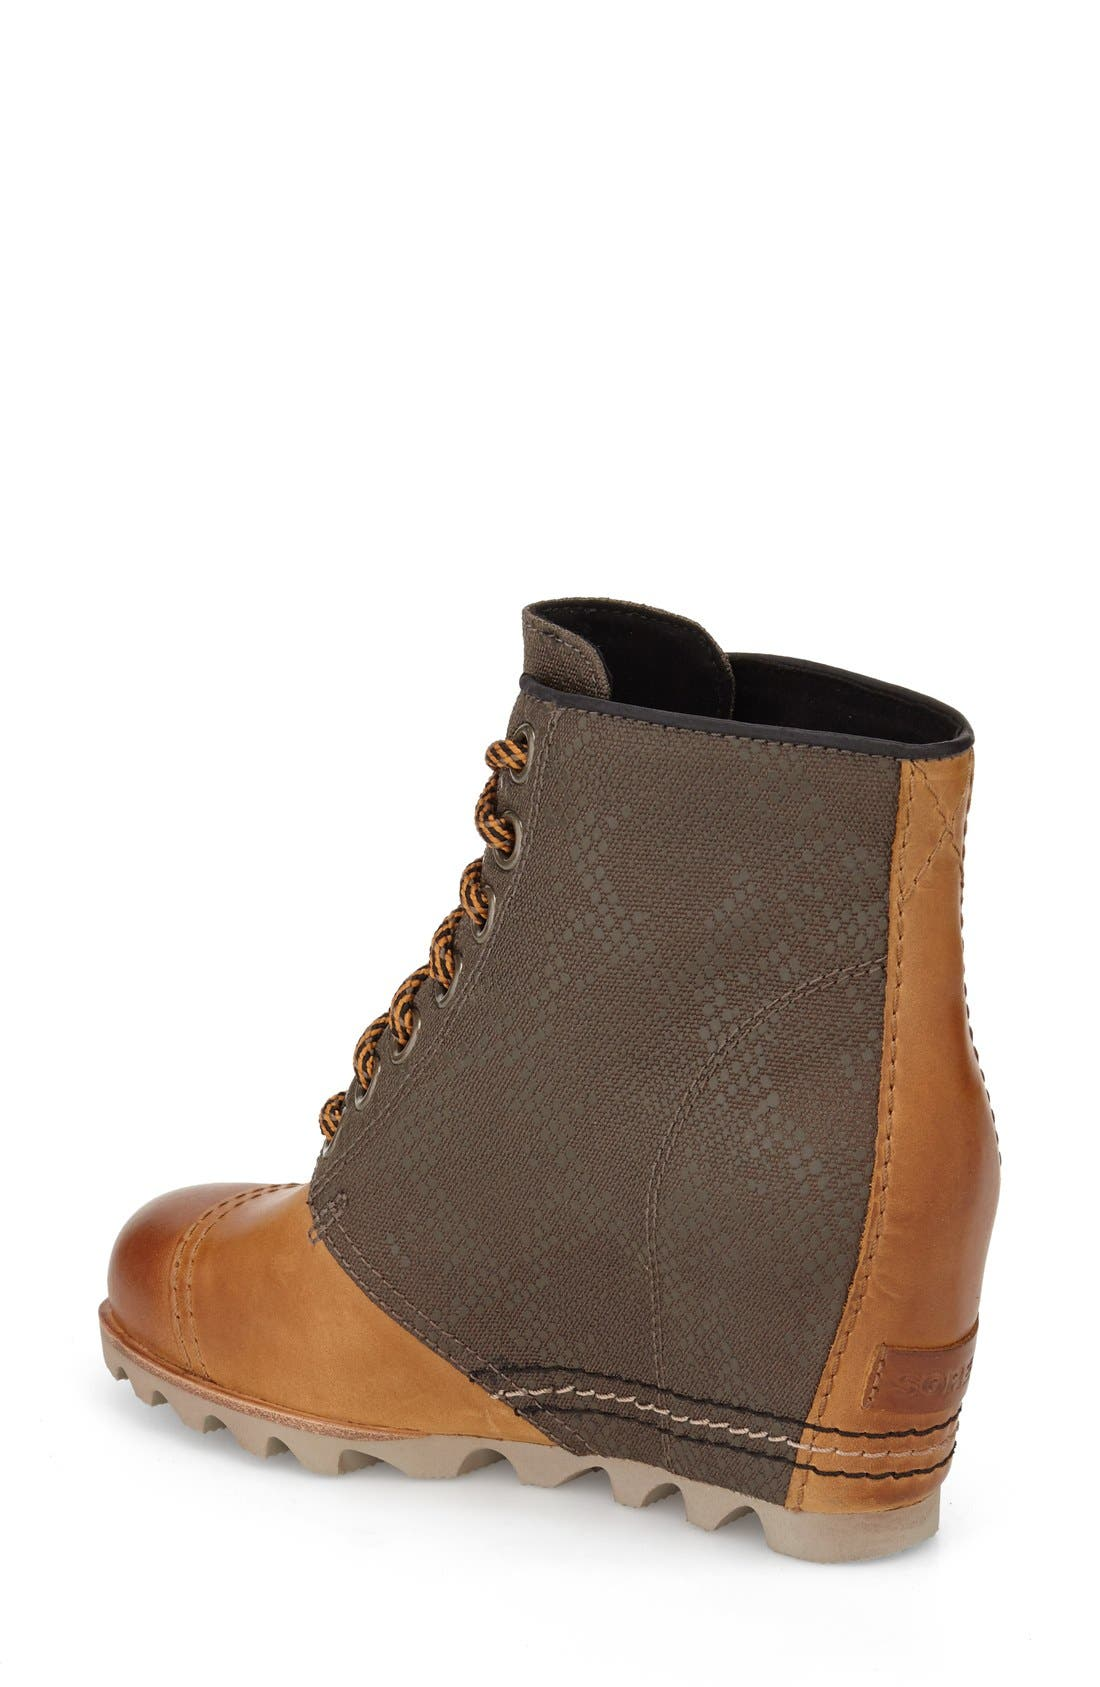 '1964 Premium Canvas' Waterproof Wedge Bootie,                             Alternate thumbnail 2, color,                             Elk